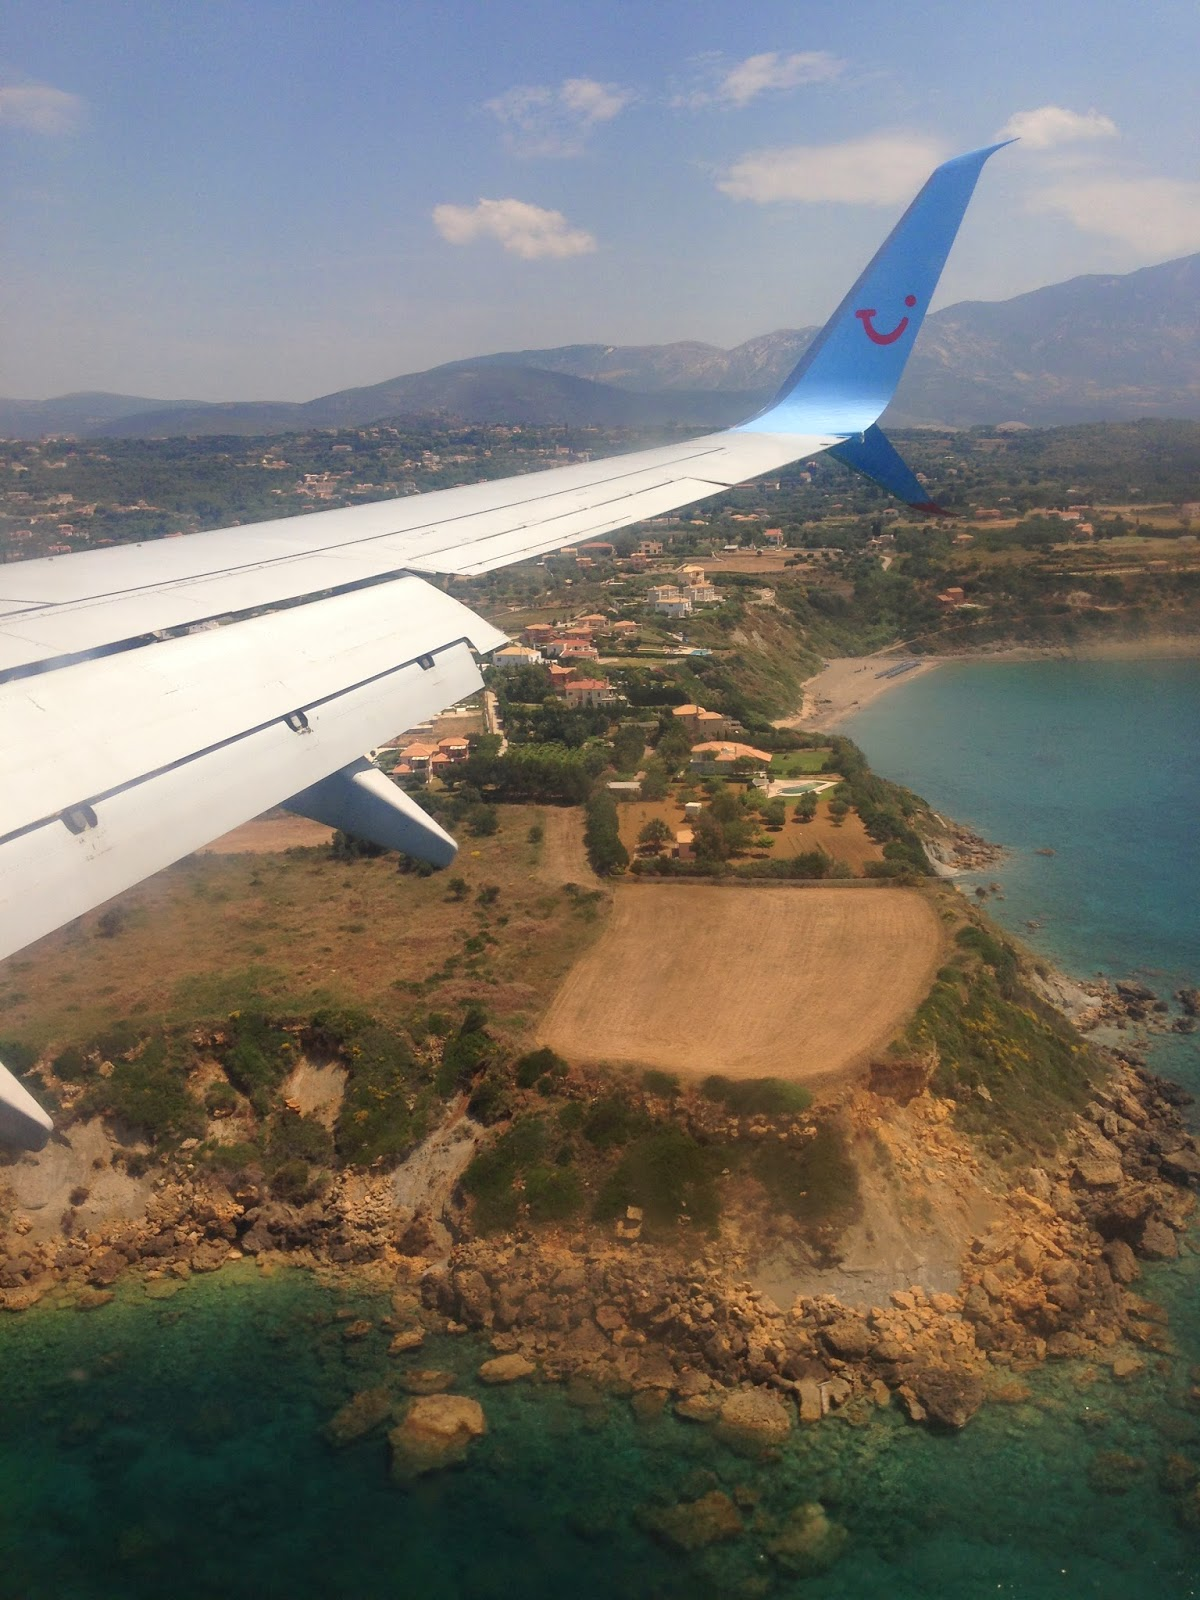 the wing of a thomson plane as it descends into kefalonia